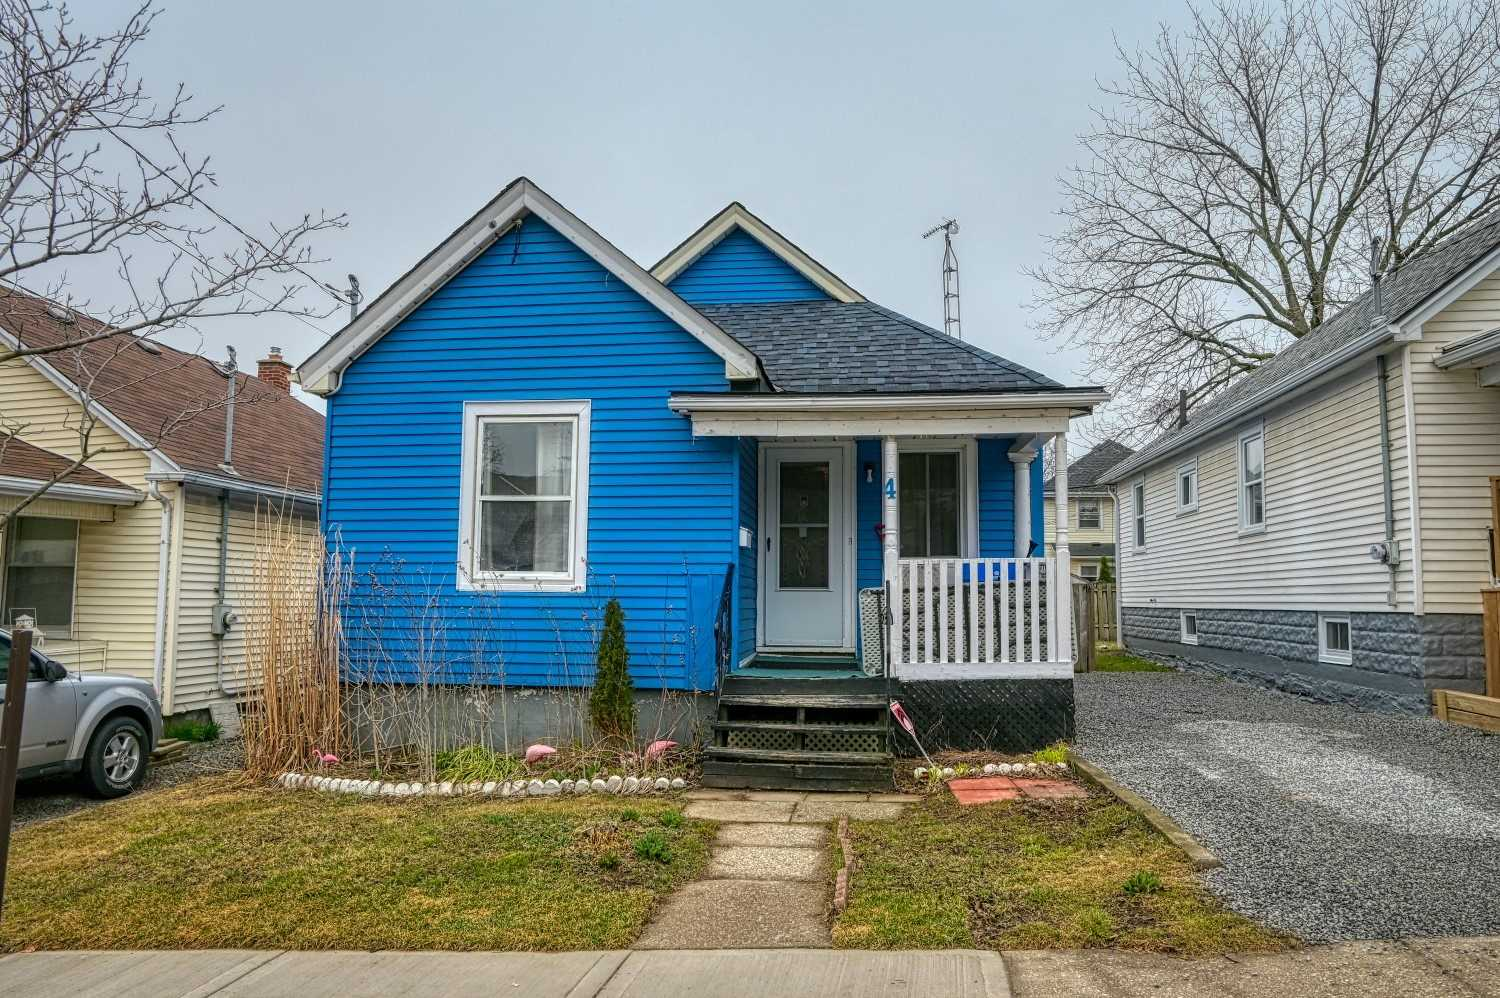 pictures of house for sale MLS: X4730185 located at 4 Berryman Ave, St. Catharines L2R3W9